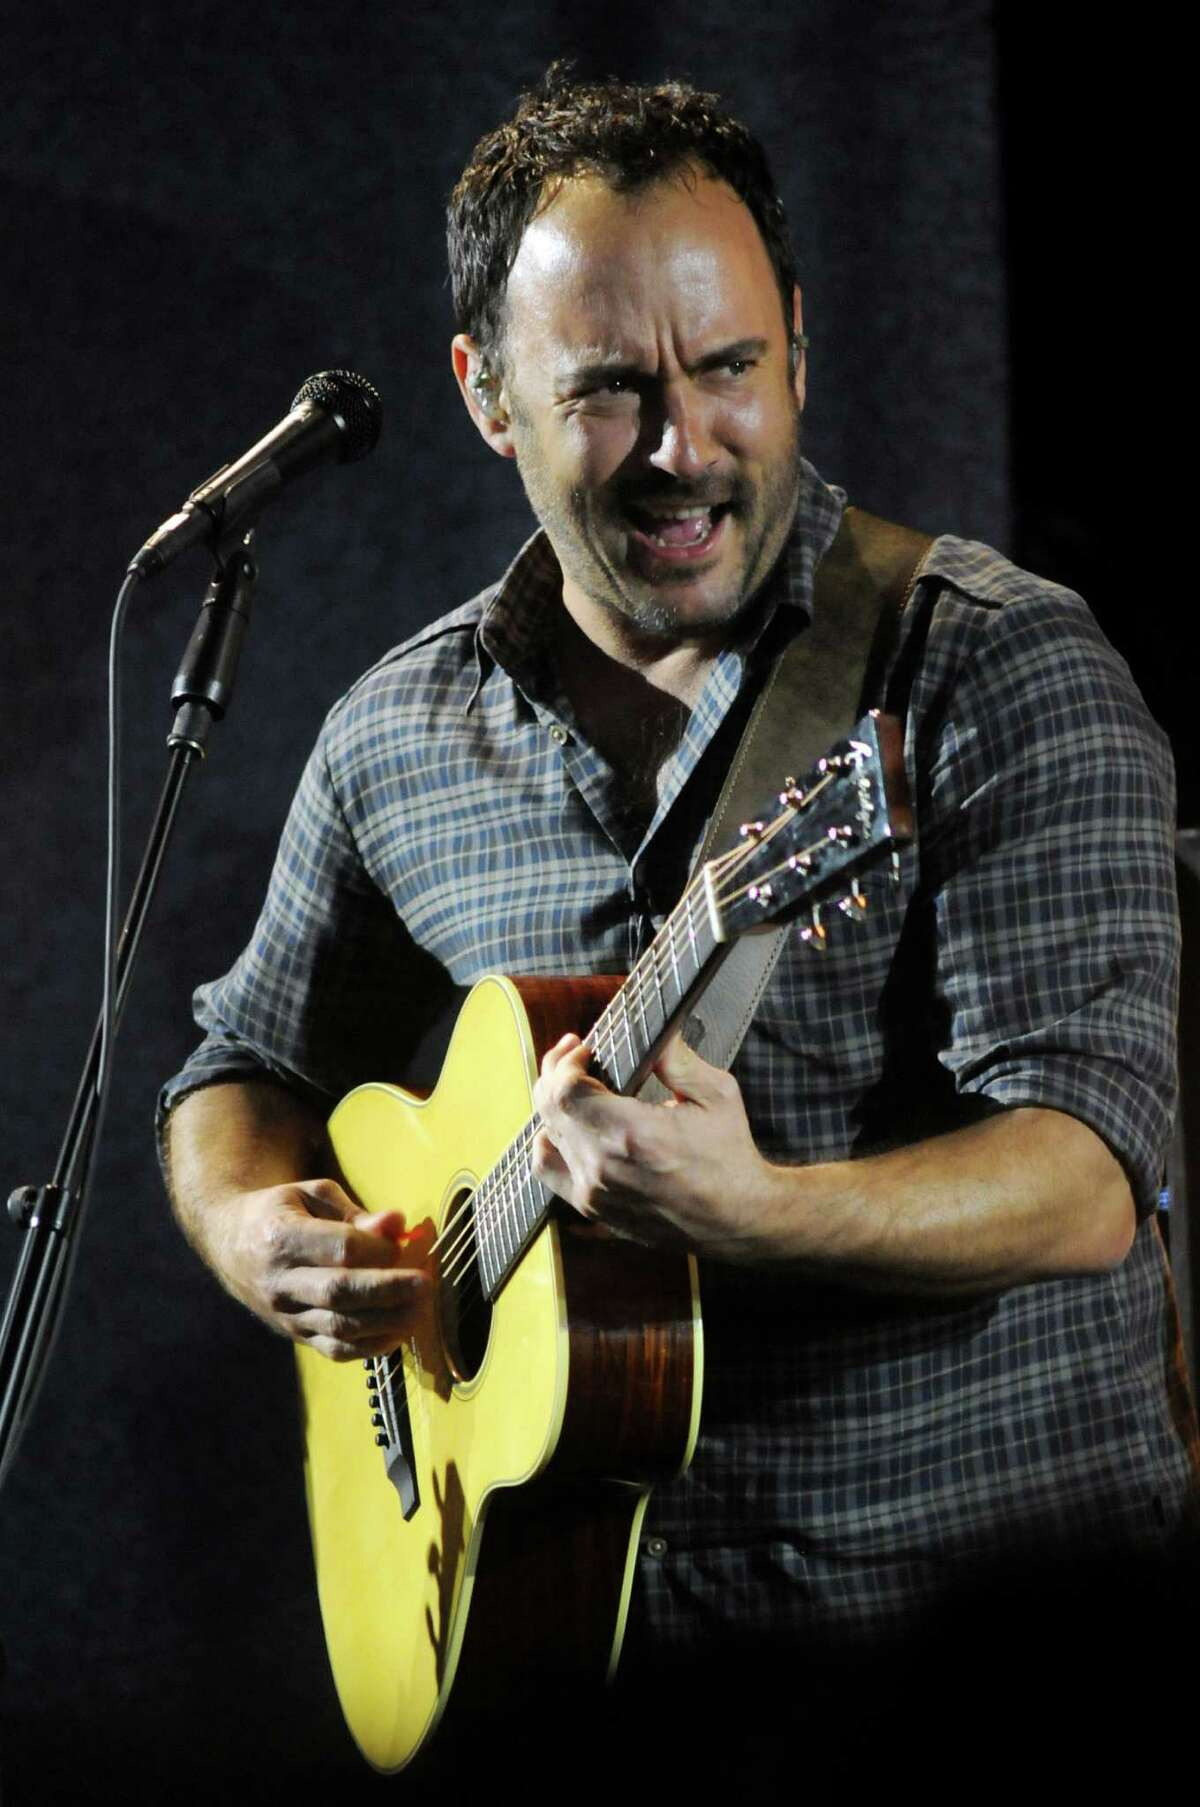 Best concert in the past year: 2. Dave Matthews Band , SPAC, May 26, 2013